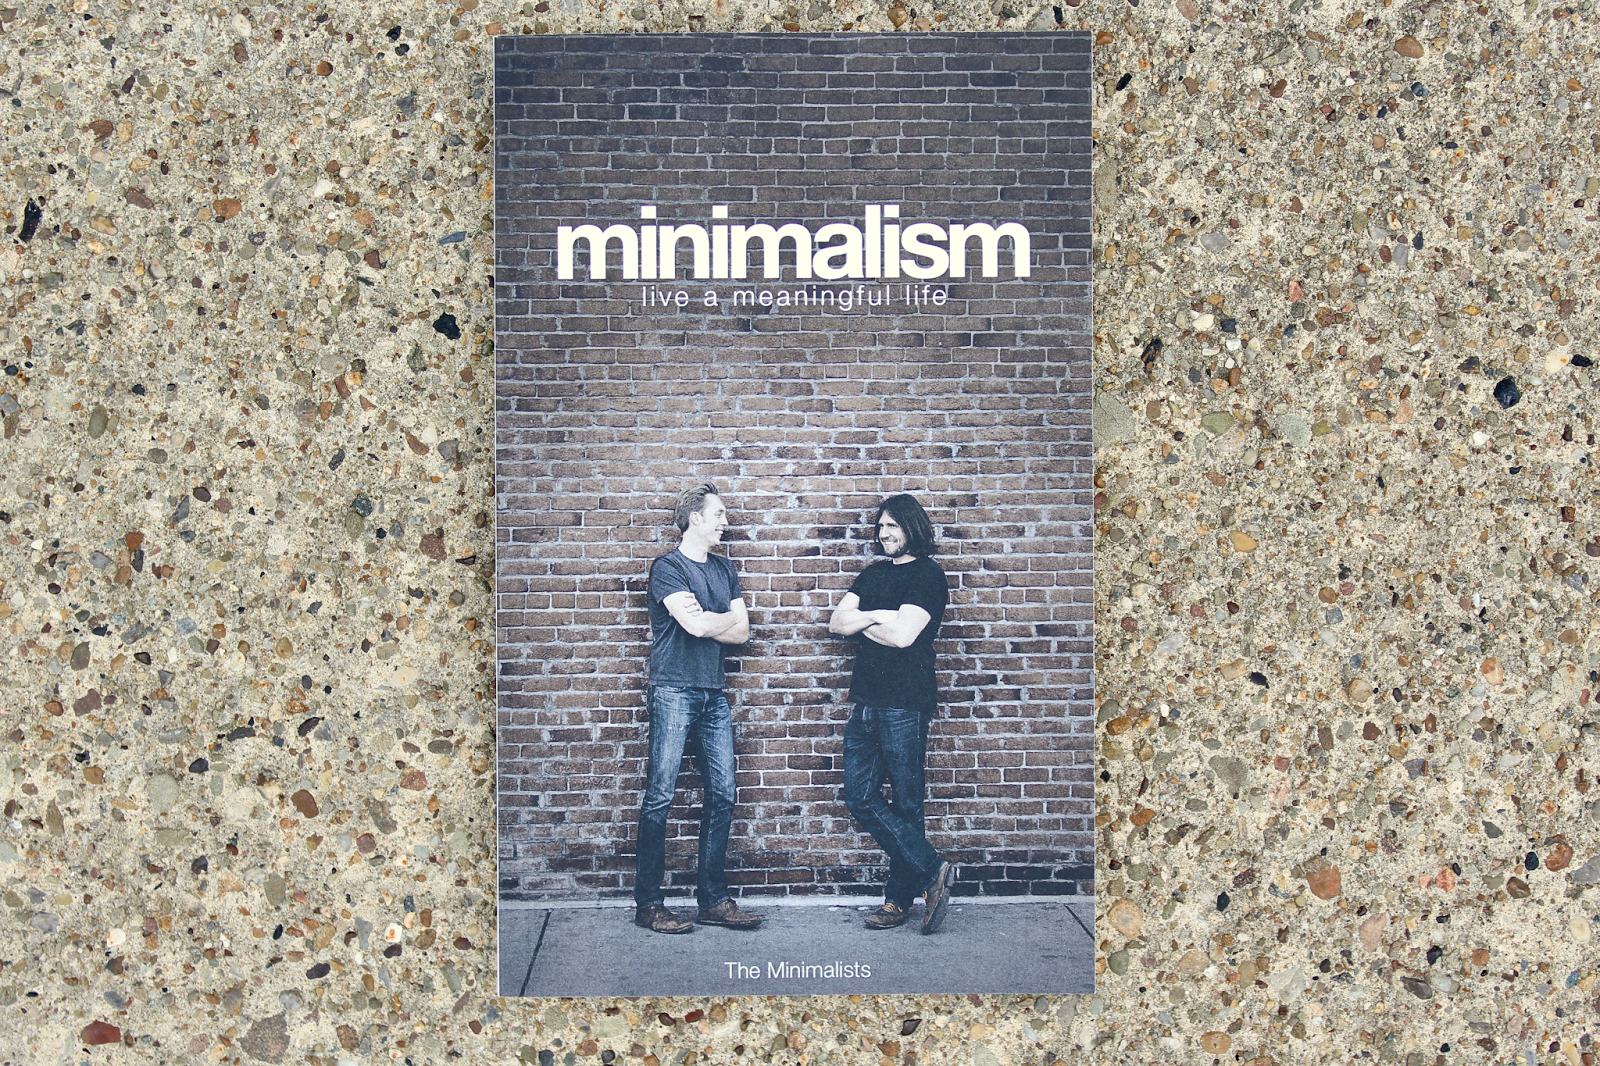 Surznick reads march 2017 the surznick common room for Minimalism live a meaningful life